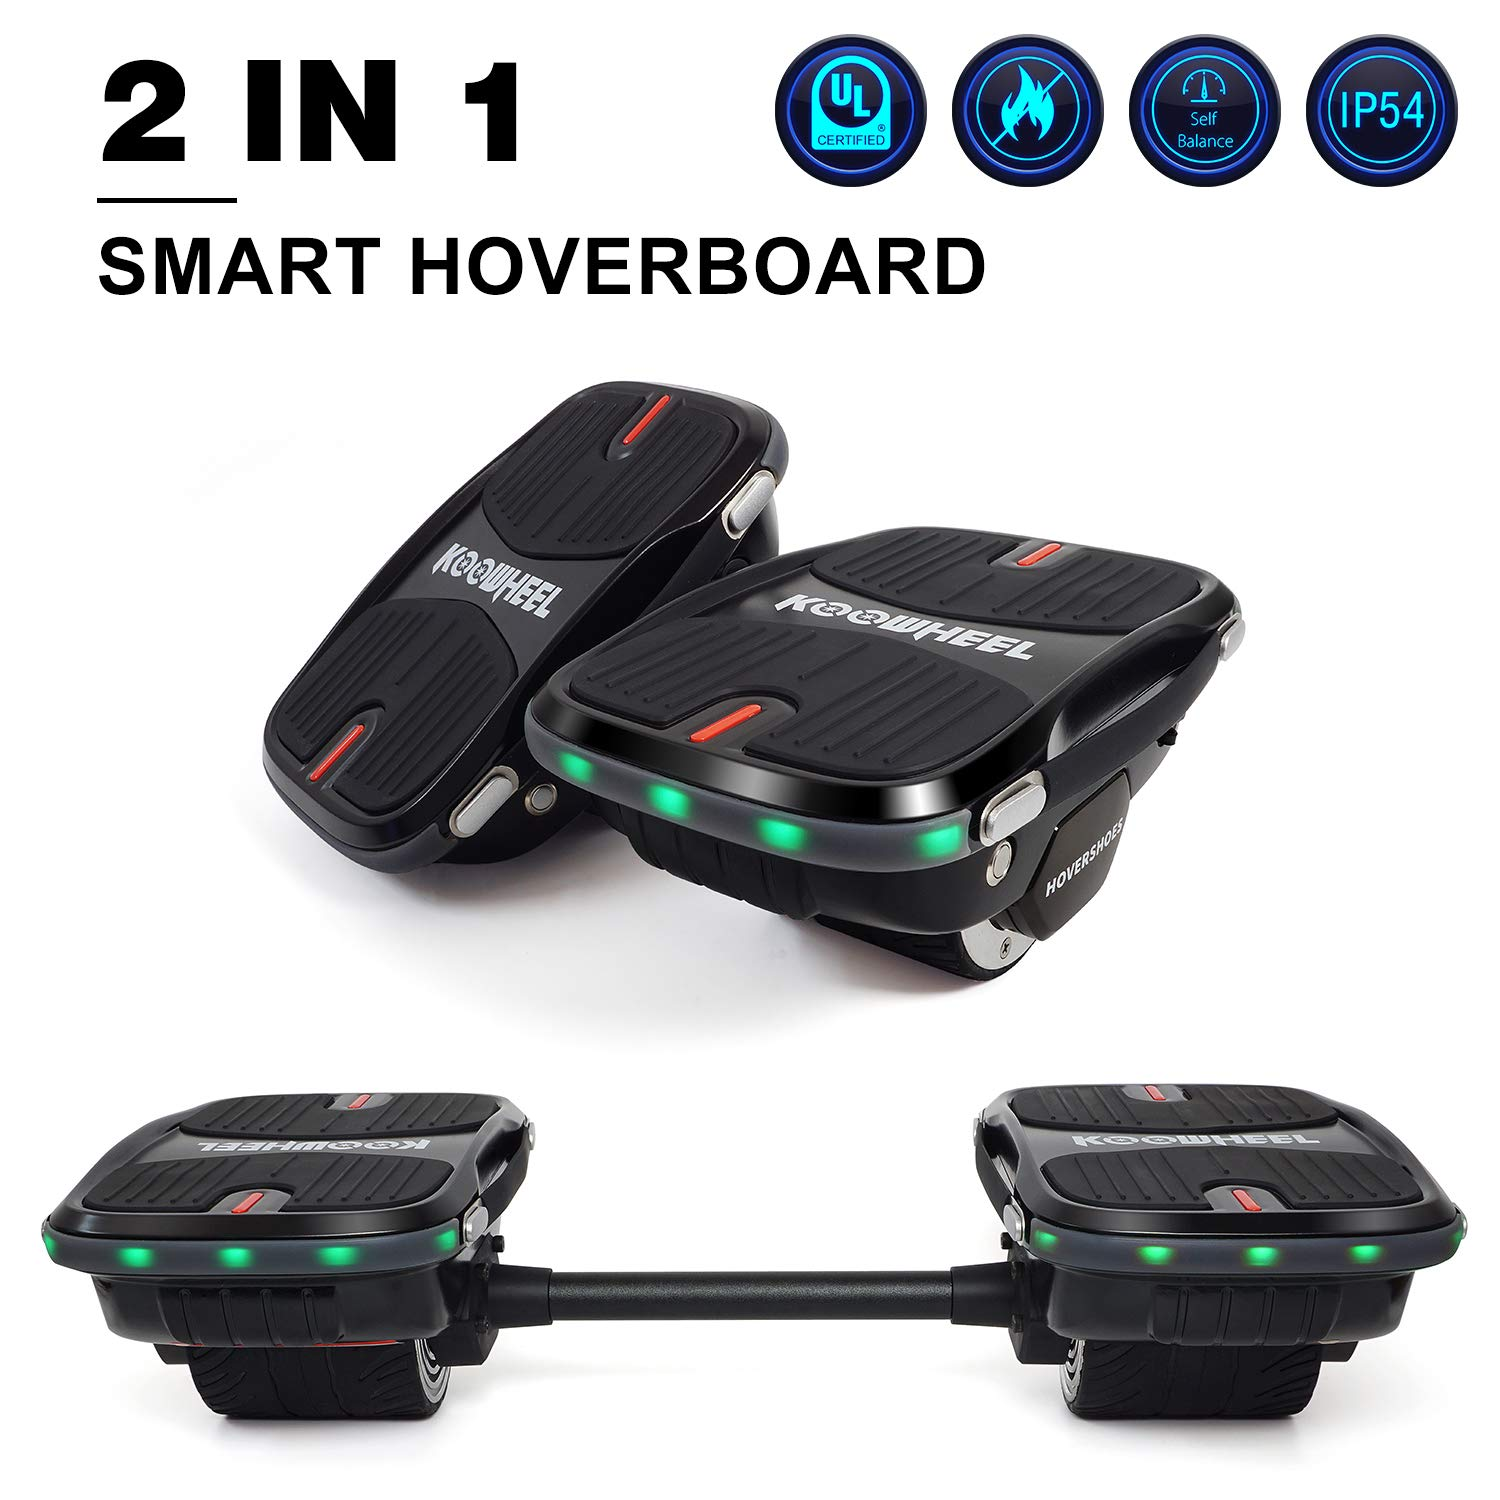 Convertible Hoverboard Hovershoes Electric